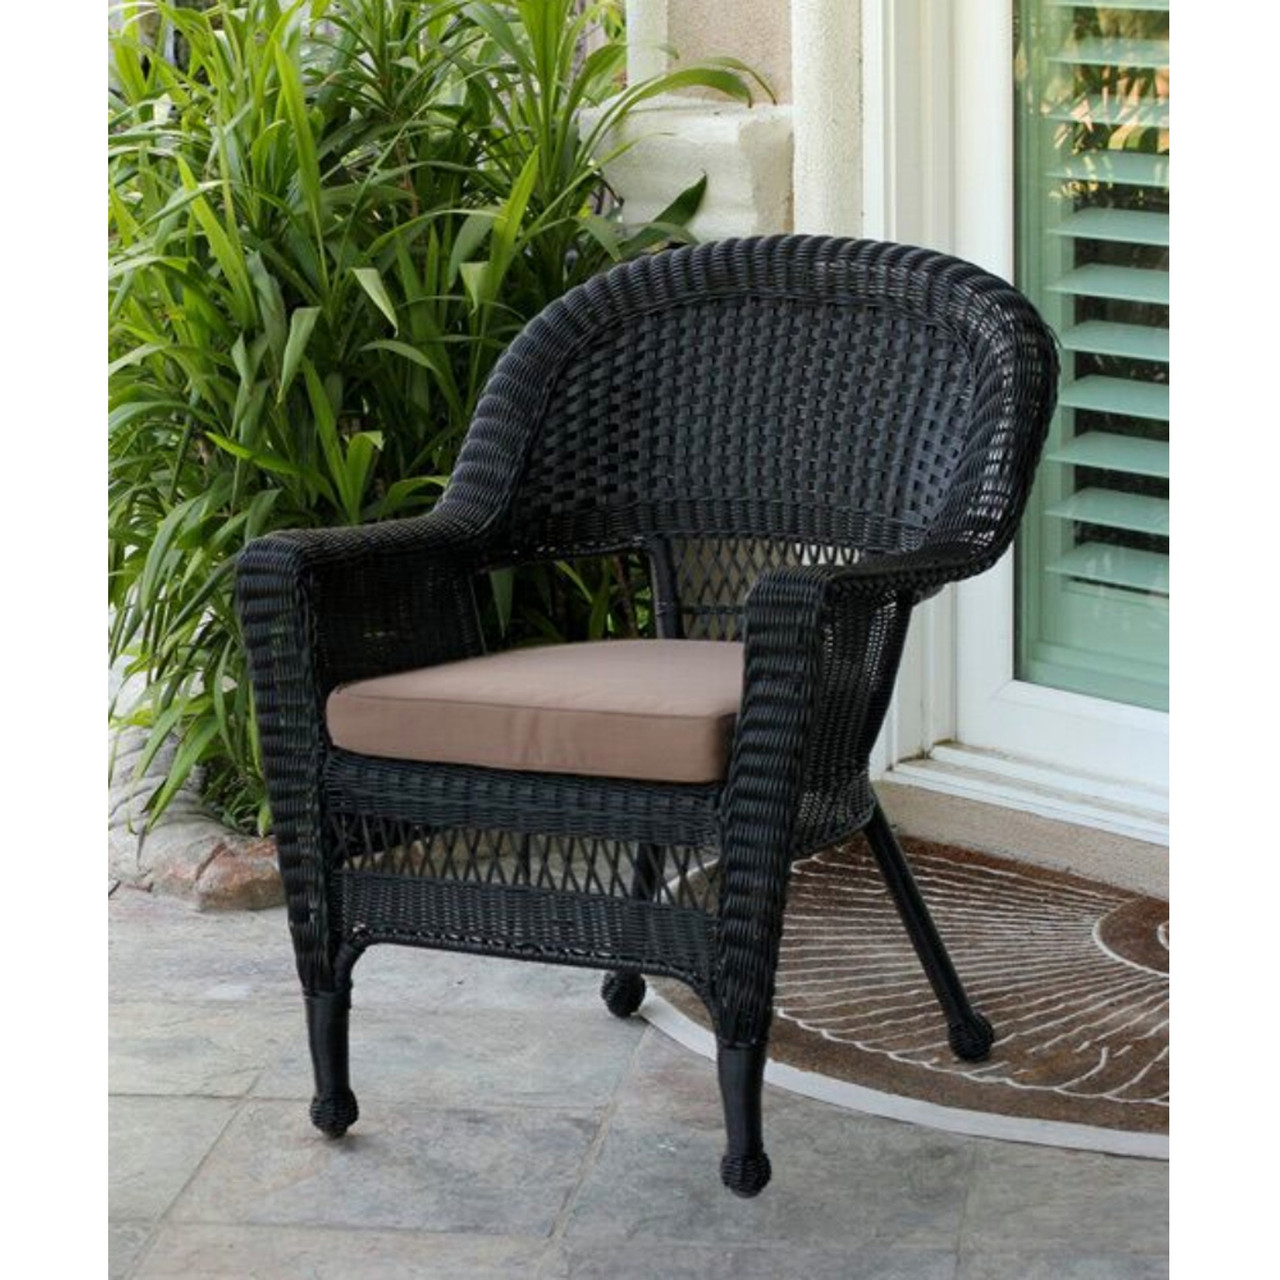 Magnificent 36 Black Resin Wicker Outdoor Patio Garden Chair With Mocha Brown Cushion 31556366 Lamtechconsult Wood Chair Design Ideas Lamtechconsultcom